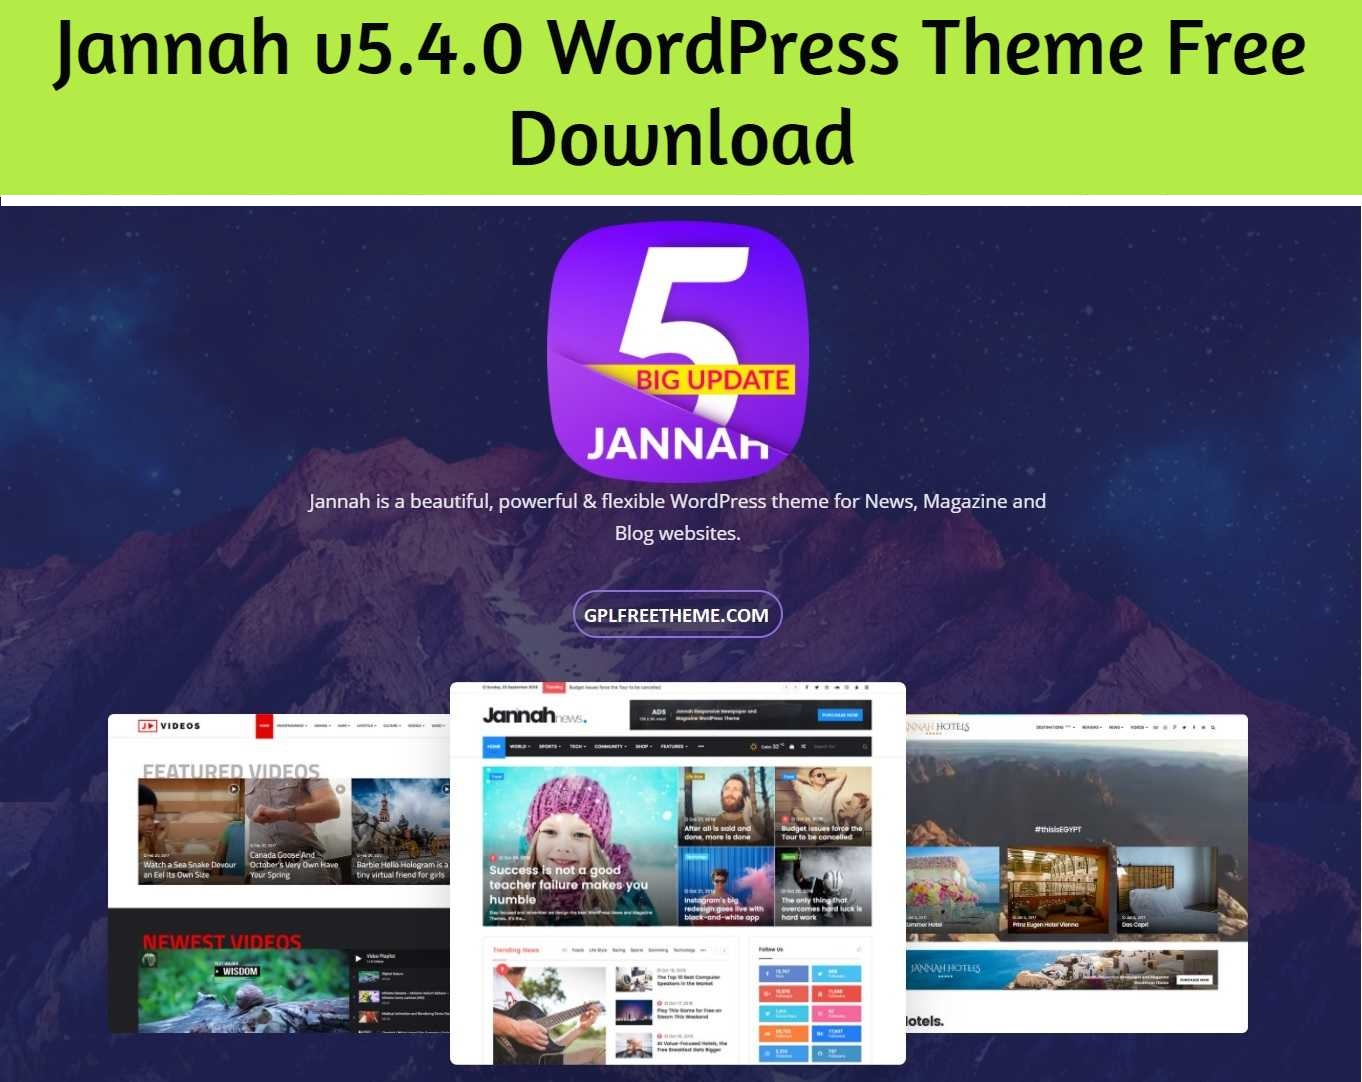 Jannah 5.4.0 WordPress Theme Free Download [Activated]